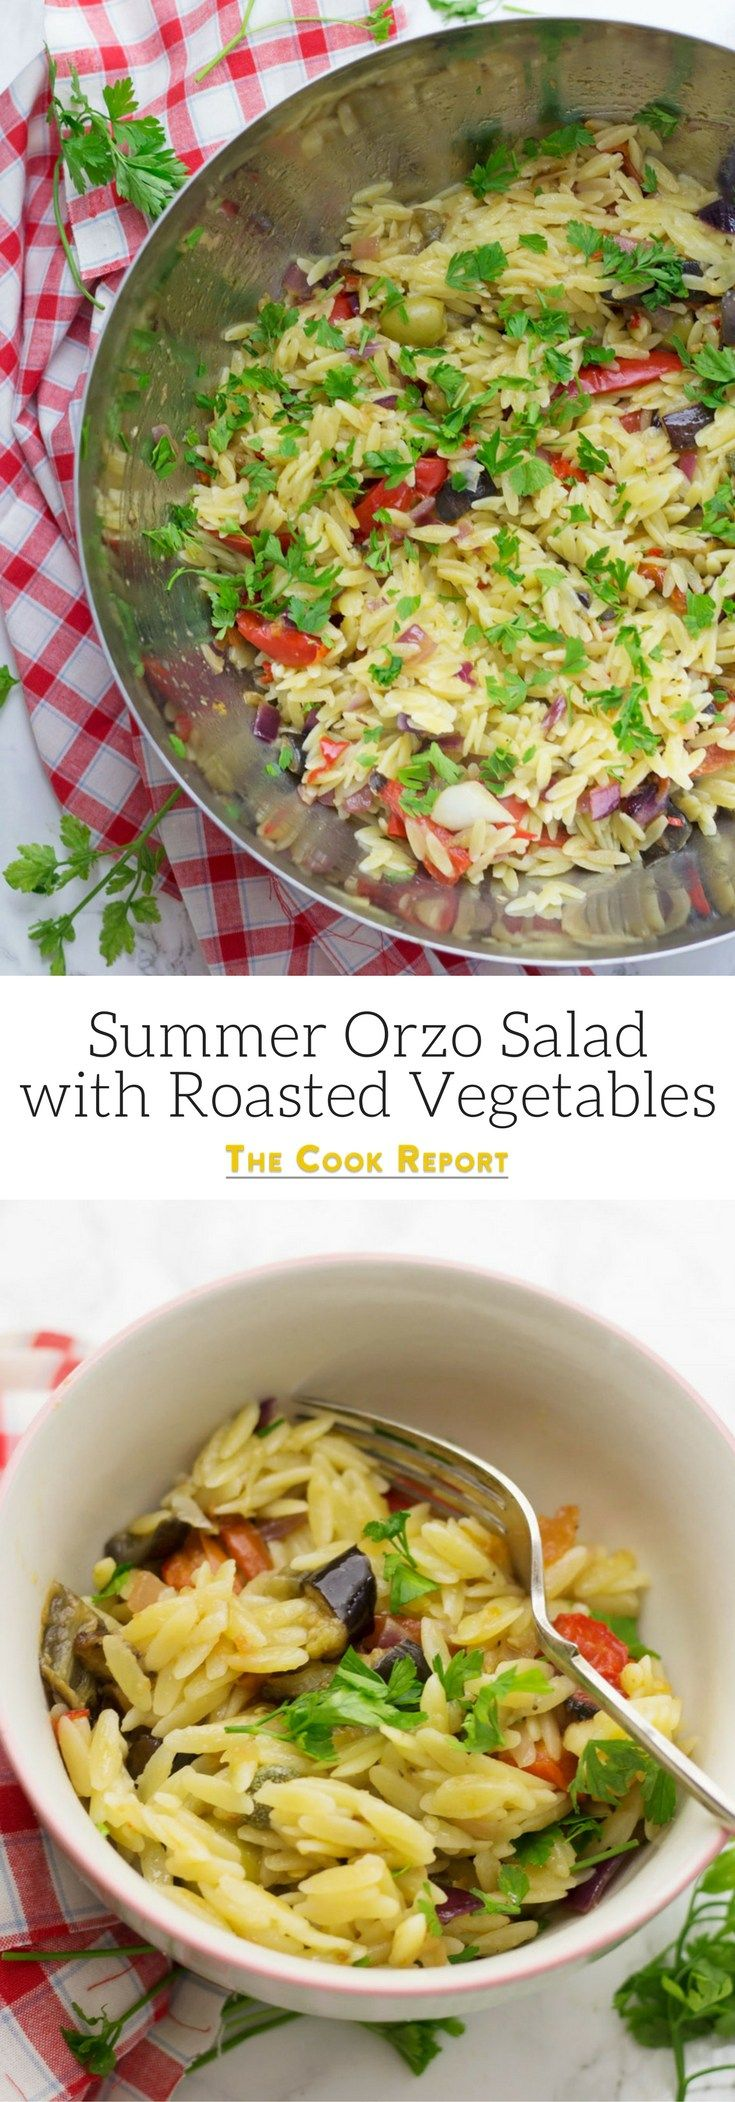 This summer orzo salad with roasted vegetables is the perfect thing to take along to your next barbecue. A great mix of tangy capers and sweet roasted veg.